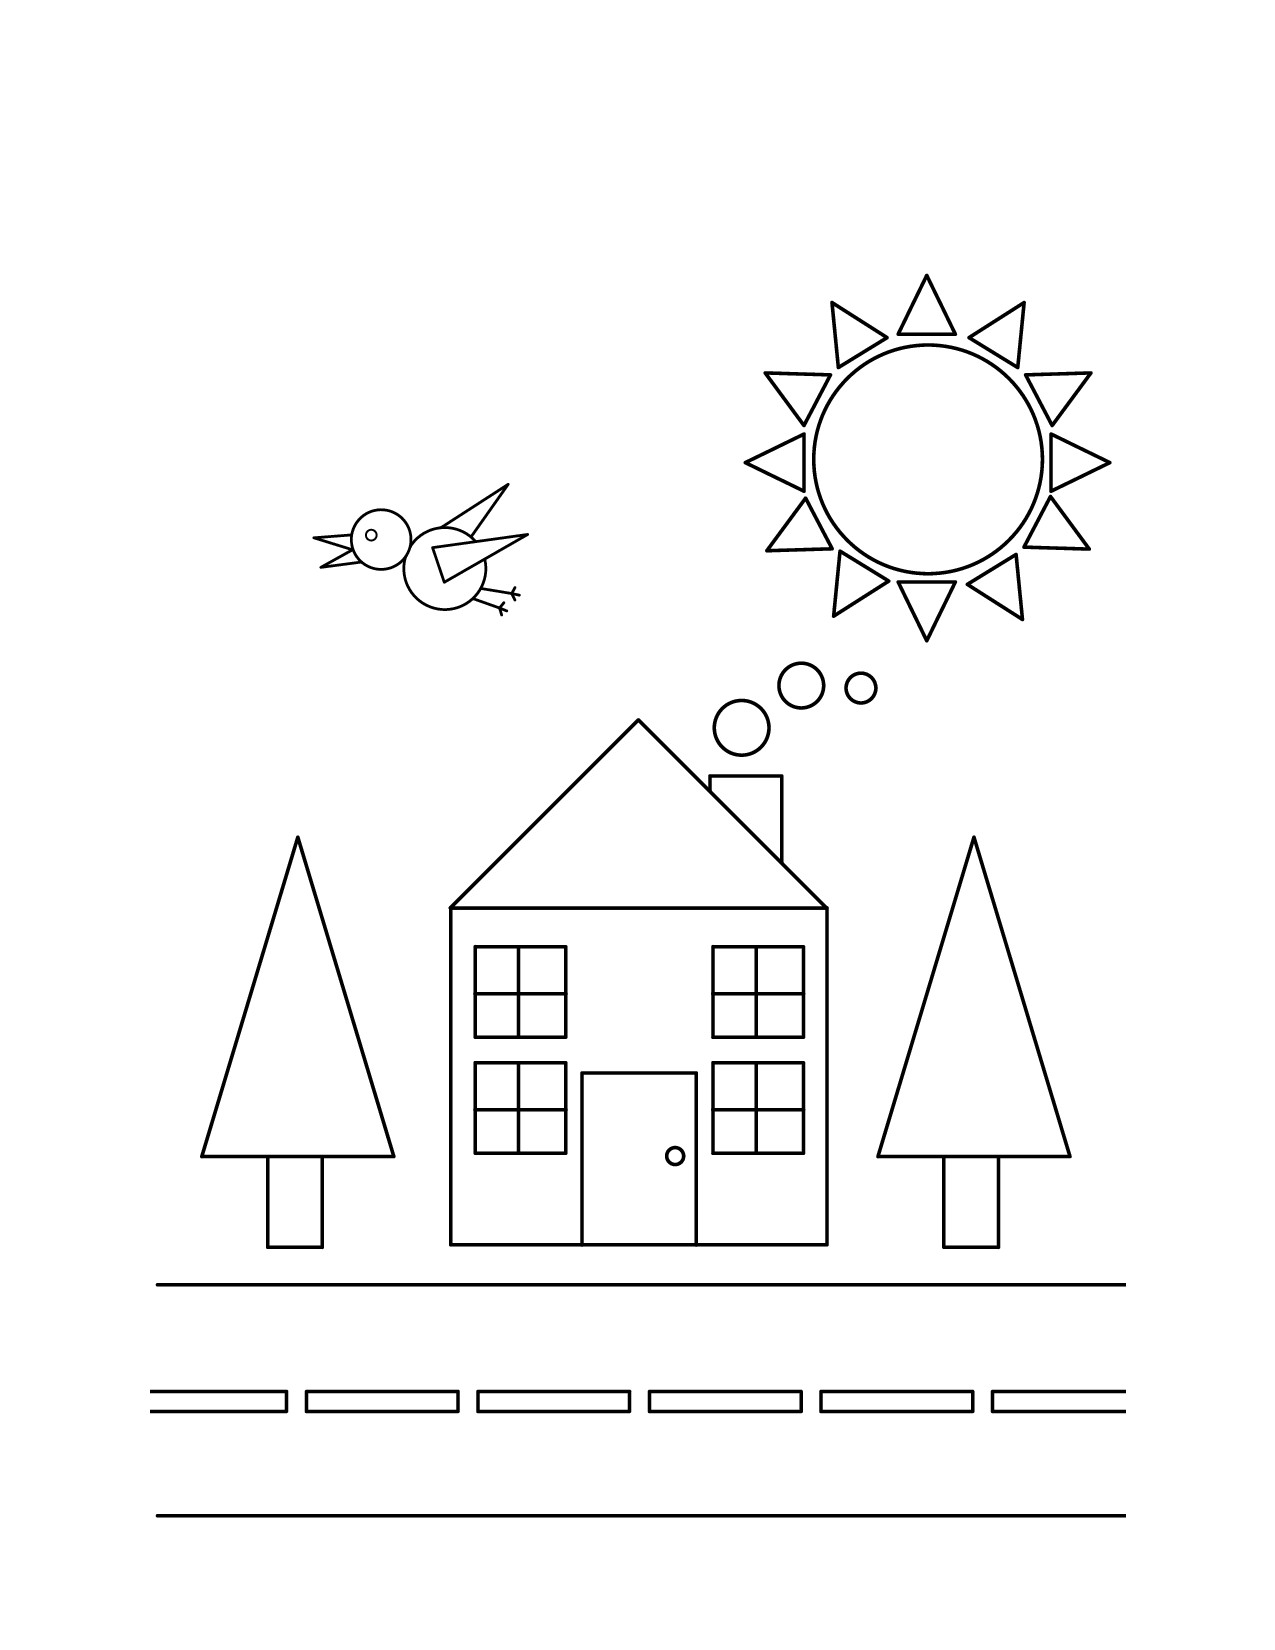 coloring sheet with shapes 3 dimensional shapes drawing at getdrawingscom free for coloring shapes sheet with